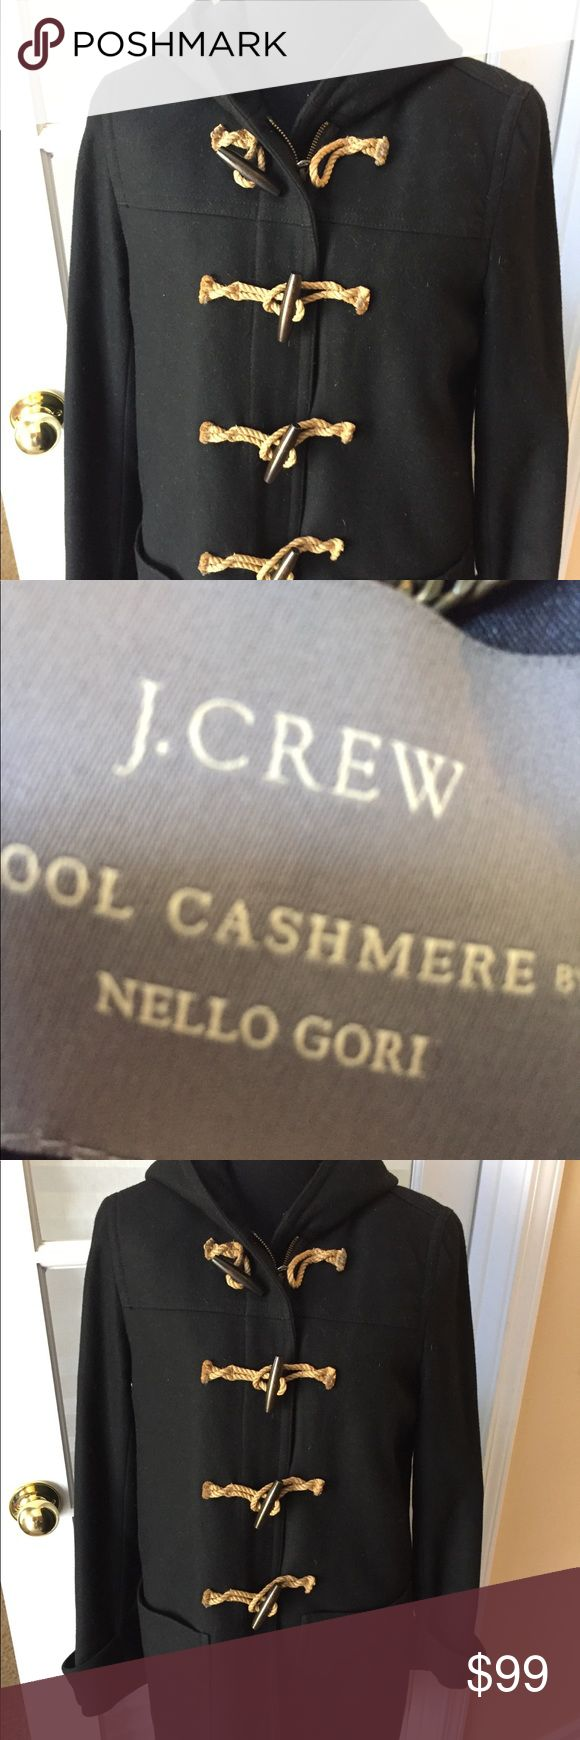 J crew wool cashmere Black pea coat by nello gori Size 8 and in fabulous condition J. Crew Jackets & Coats Pea Coats